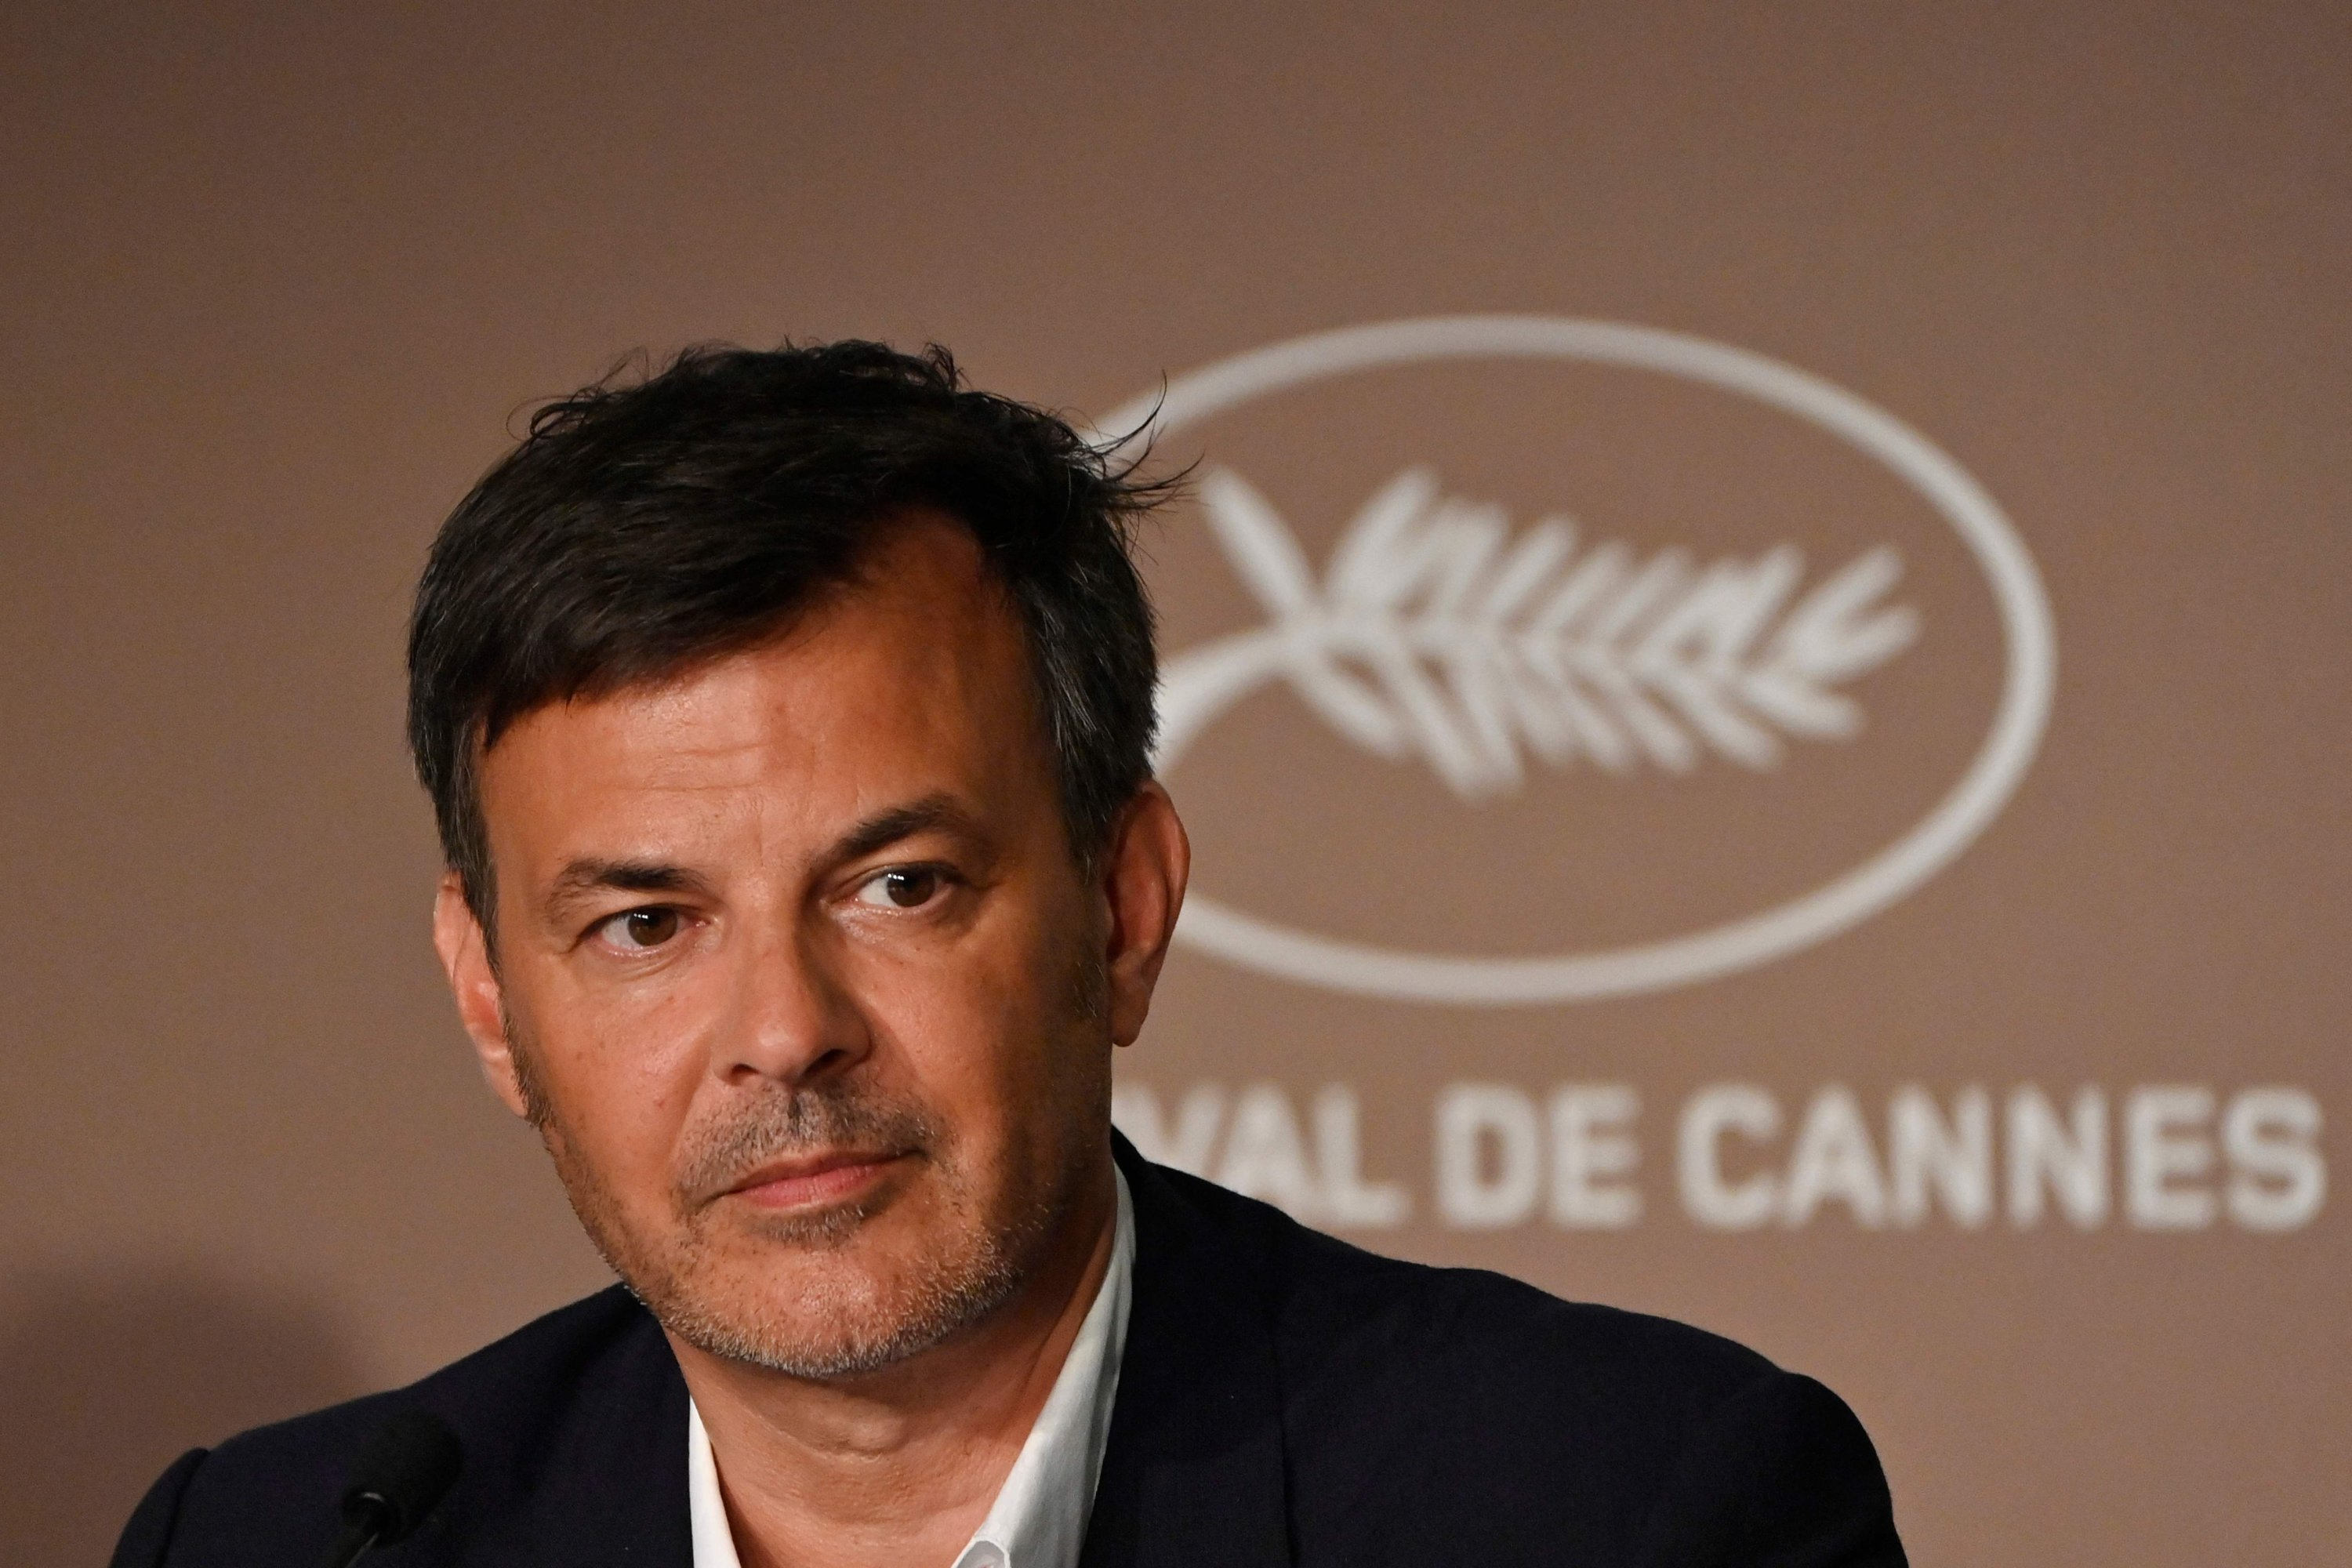 French director Francois Ozon attends a press conference for the film 'Tout s'est Bien Passe' ('Everything Went Fine') at the 74th edition of the Cannes Film Festival in Cannes, southern France, July 8, 2021. (Photo by John MACDOUGALL / AFP)